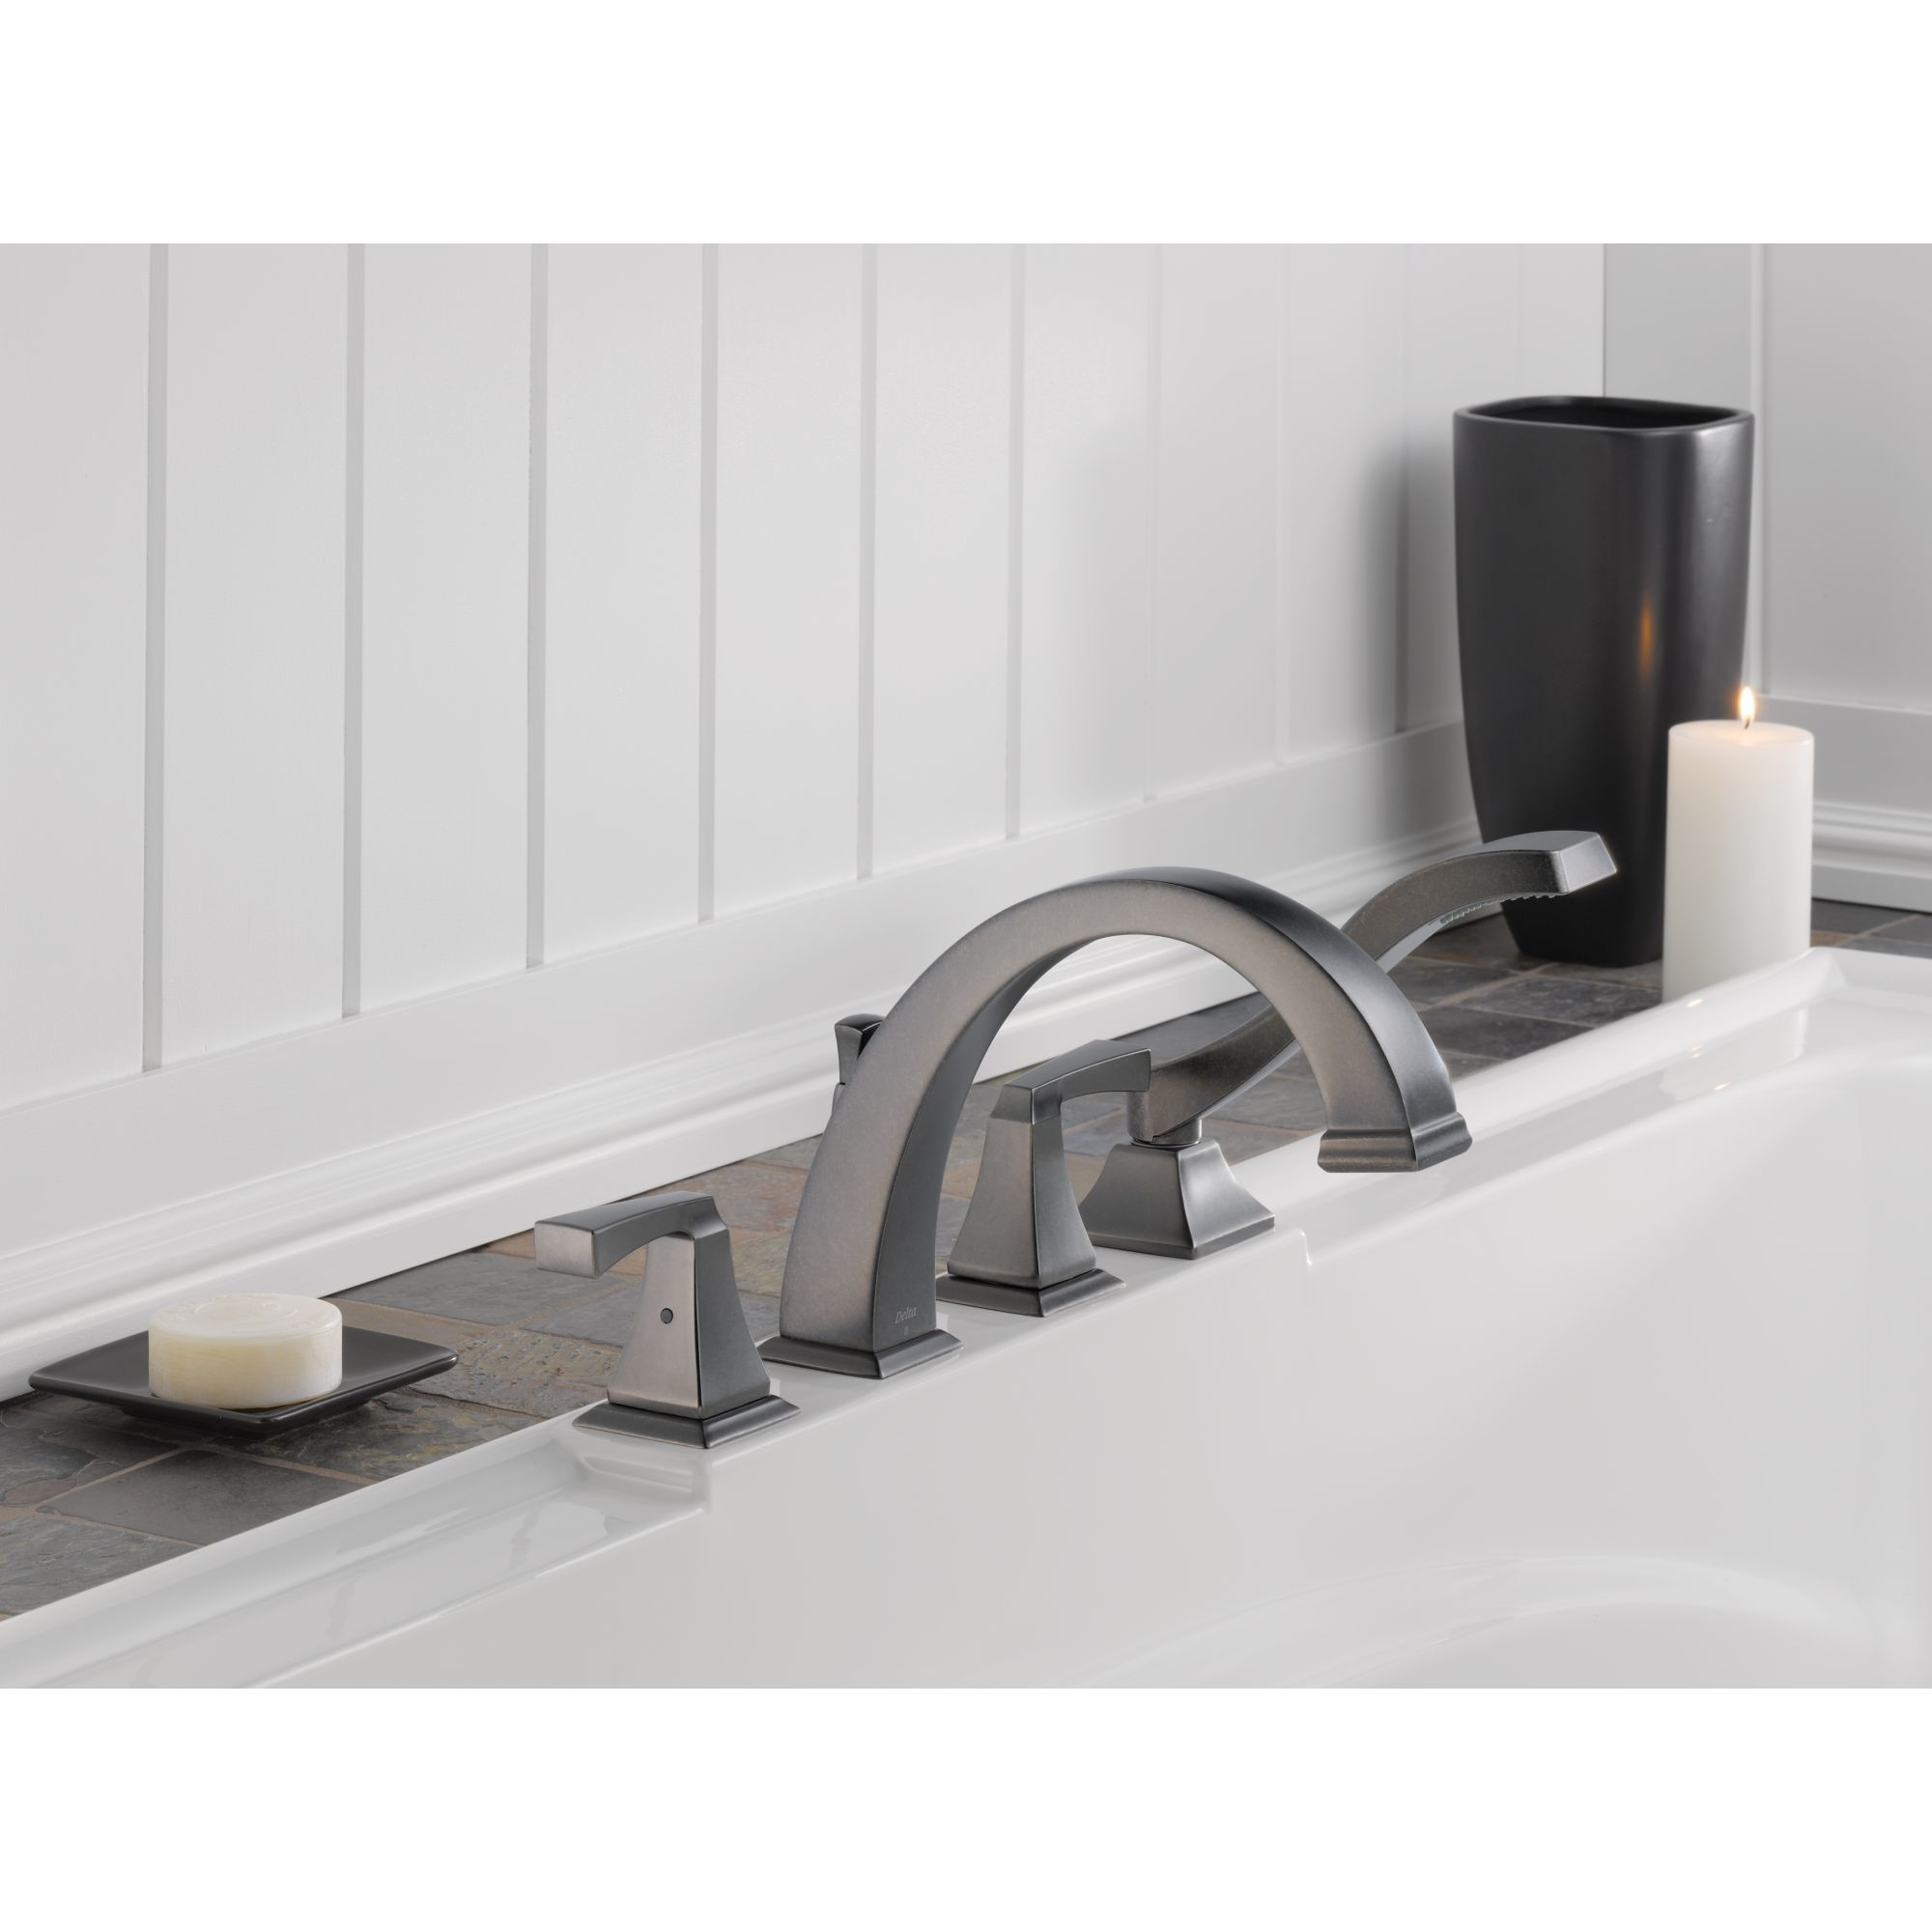 Delta Dryden Roman Tub faucet with hand shower | New Home ...